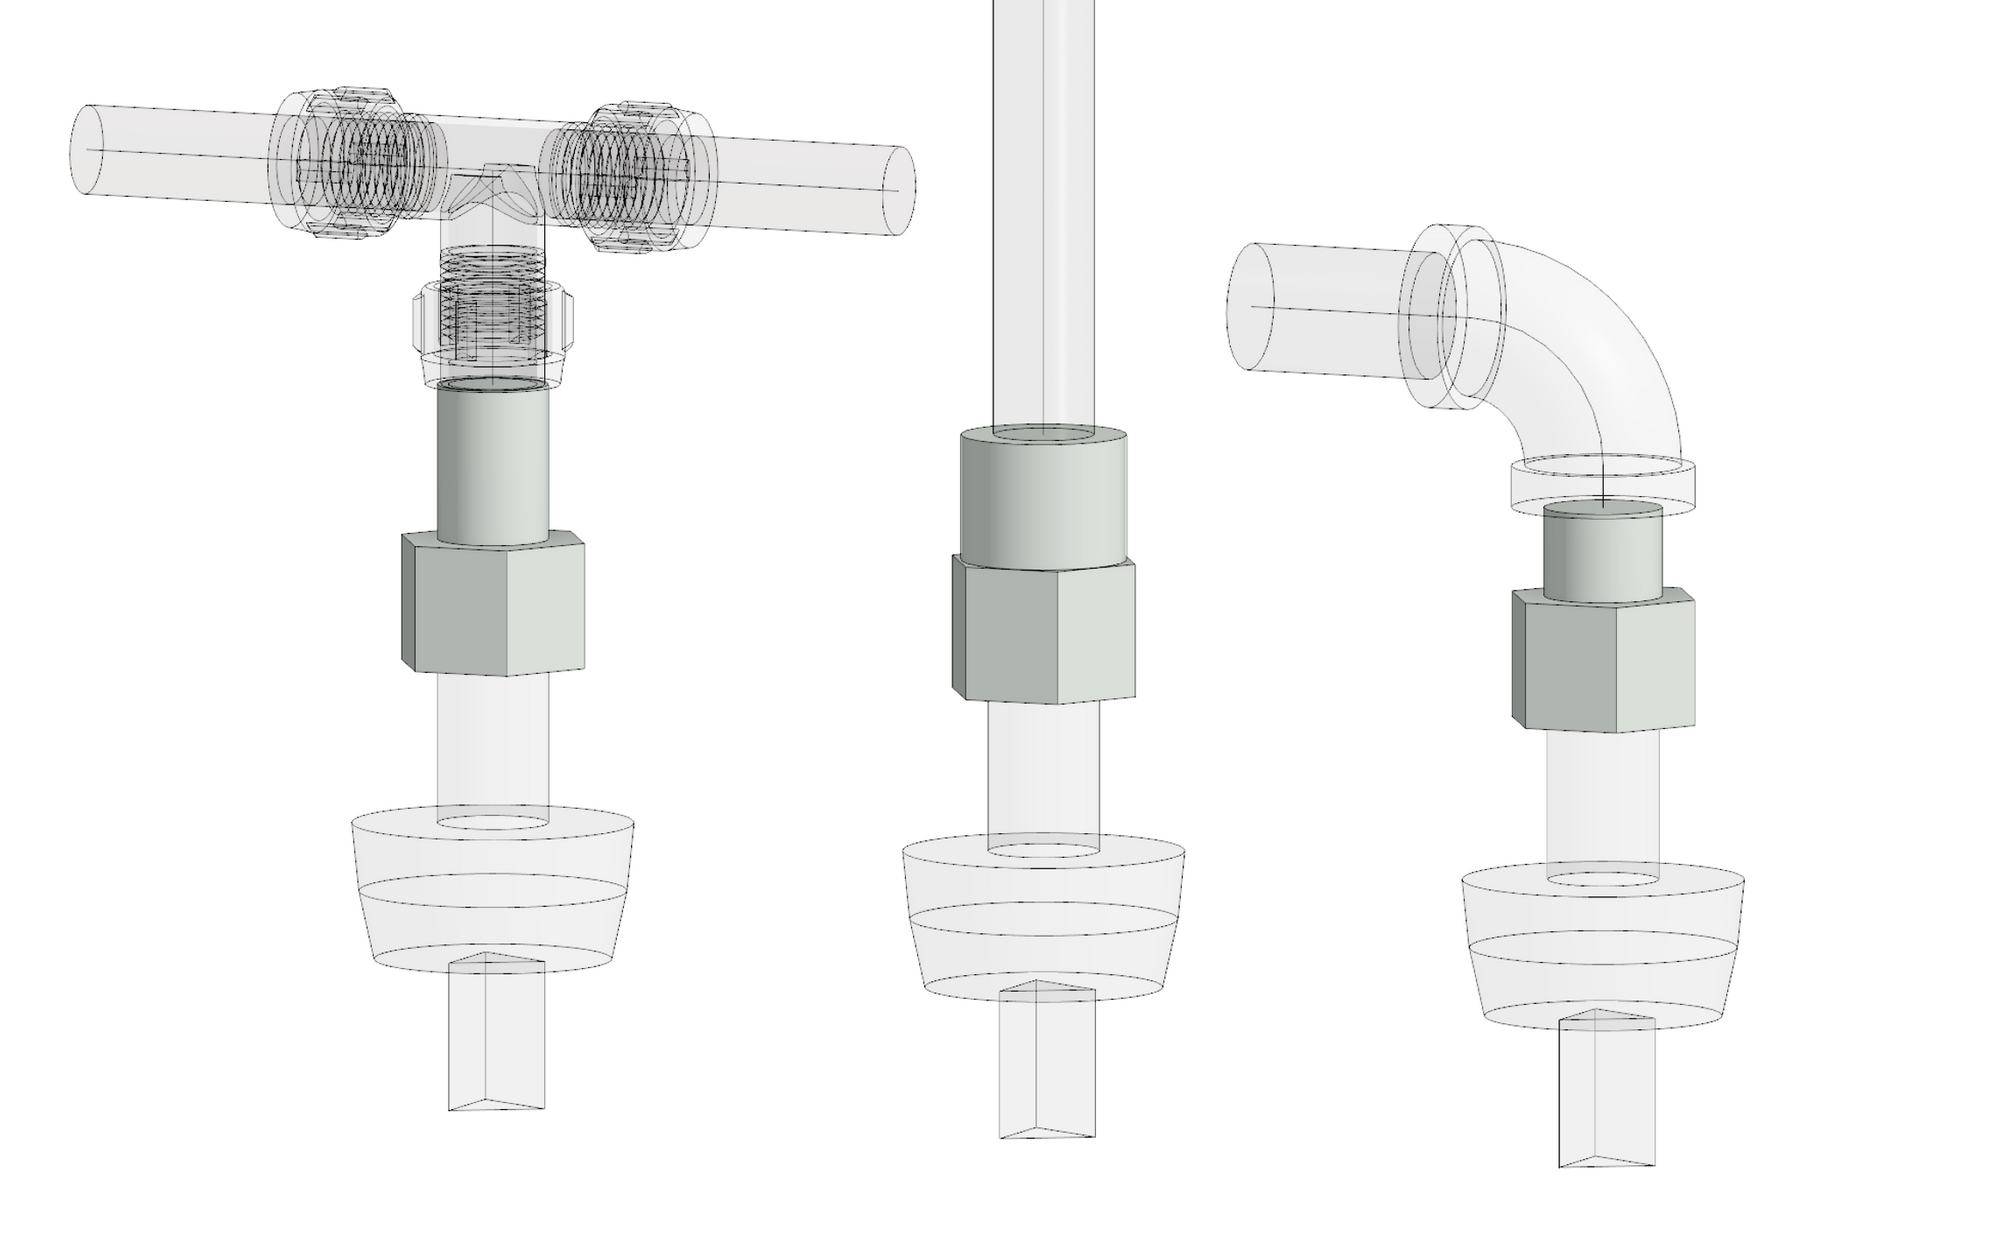 Revit families for compressed spigot, female threaded and male threaded adaptors.